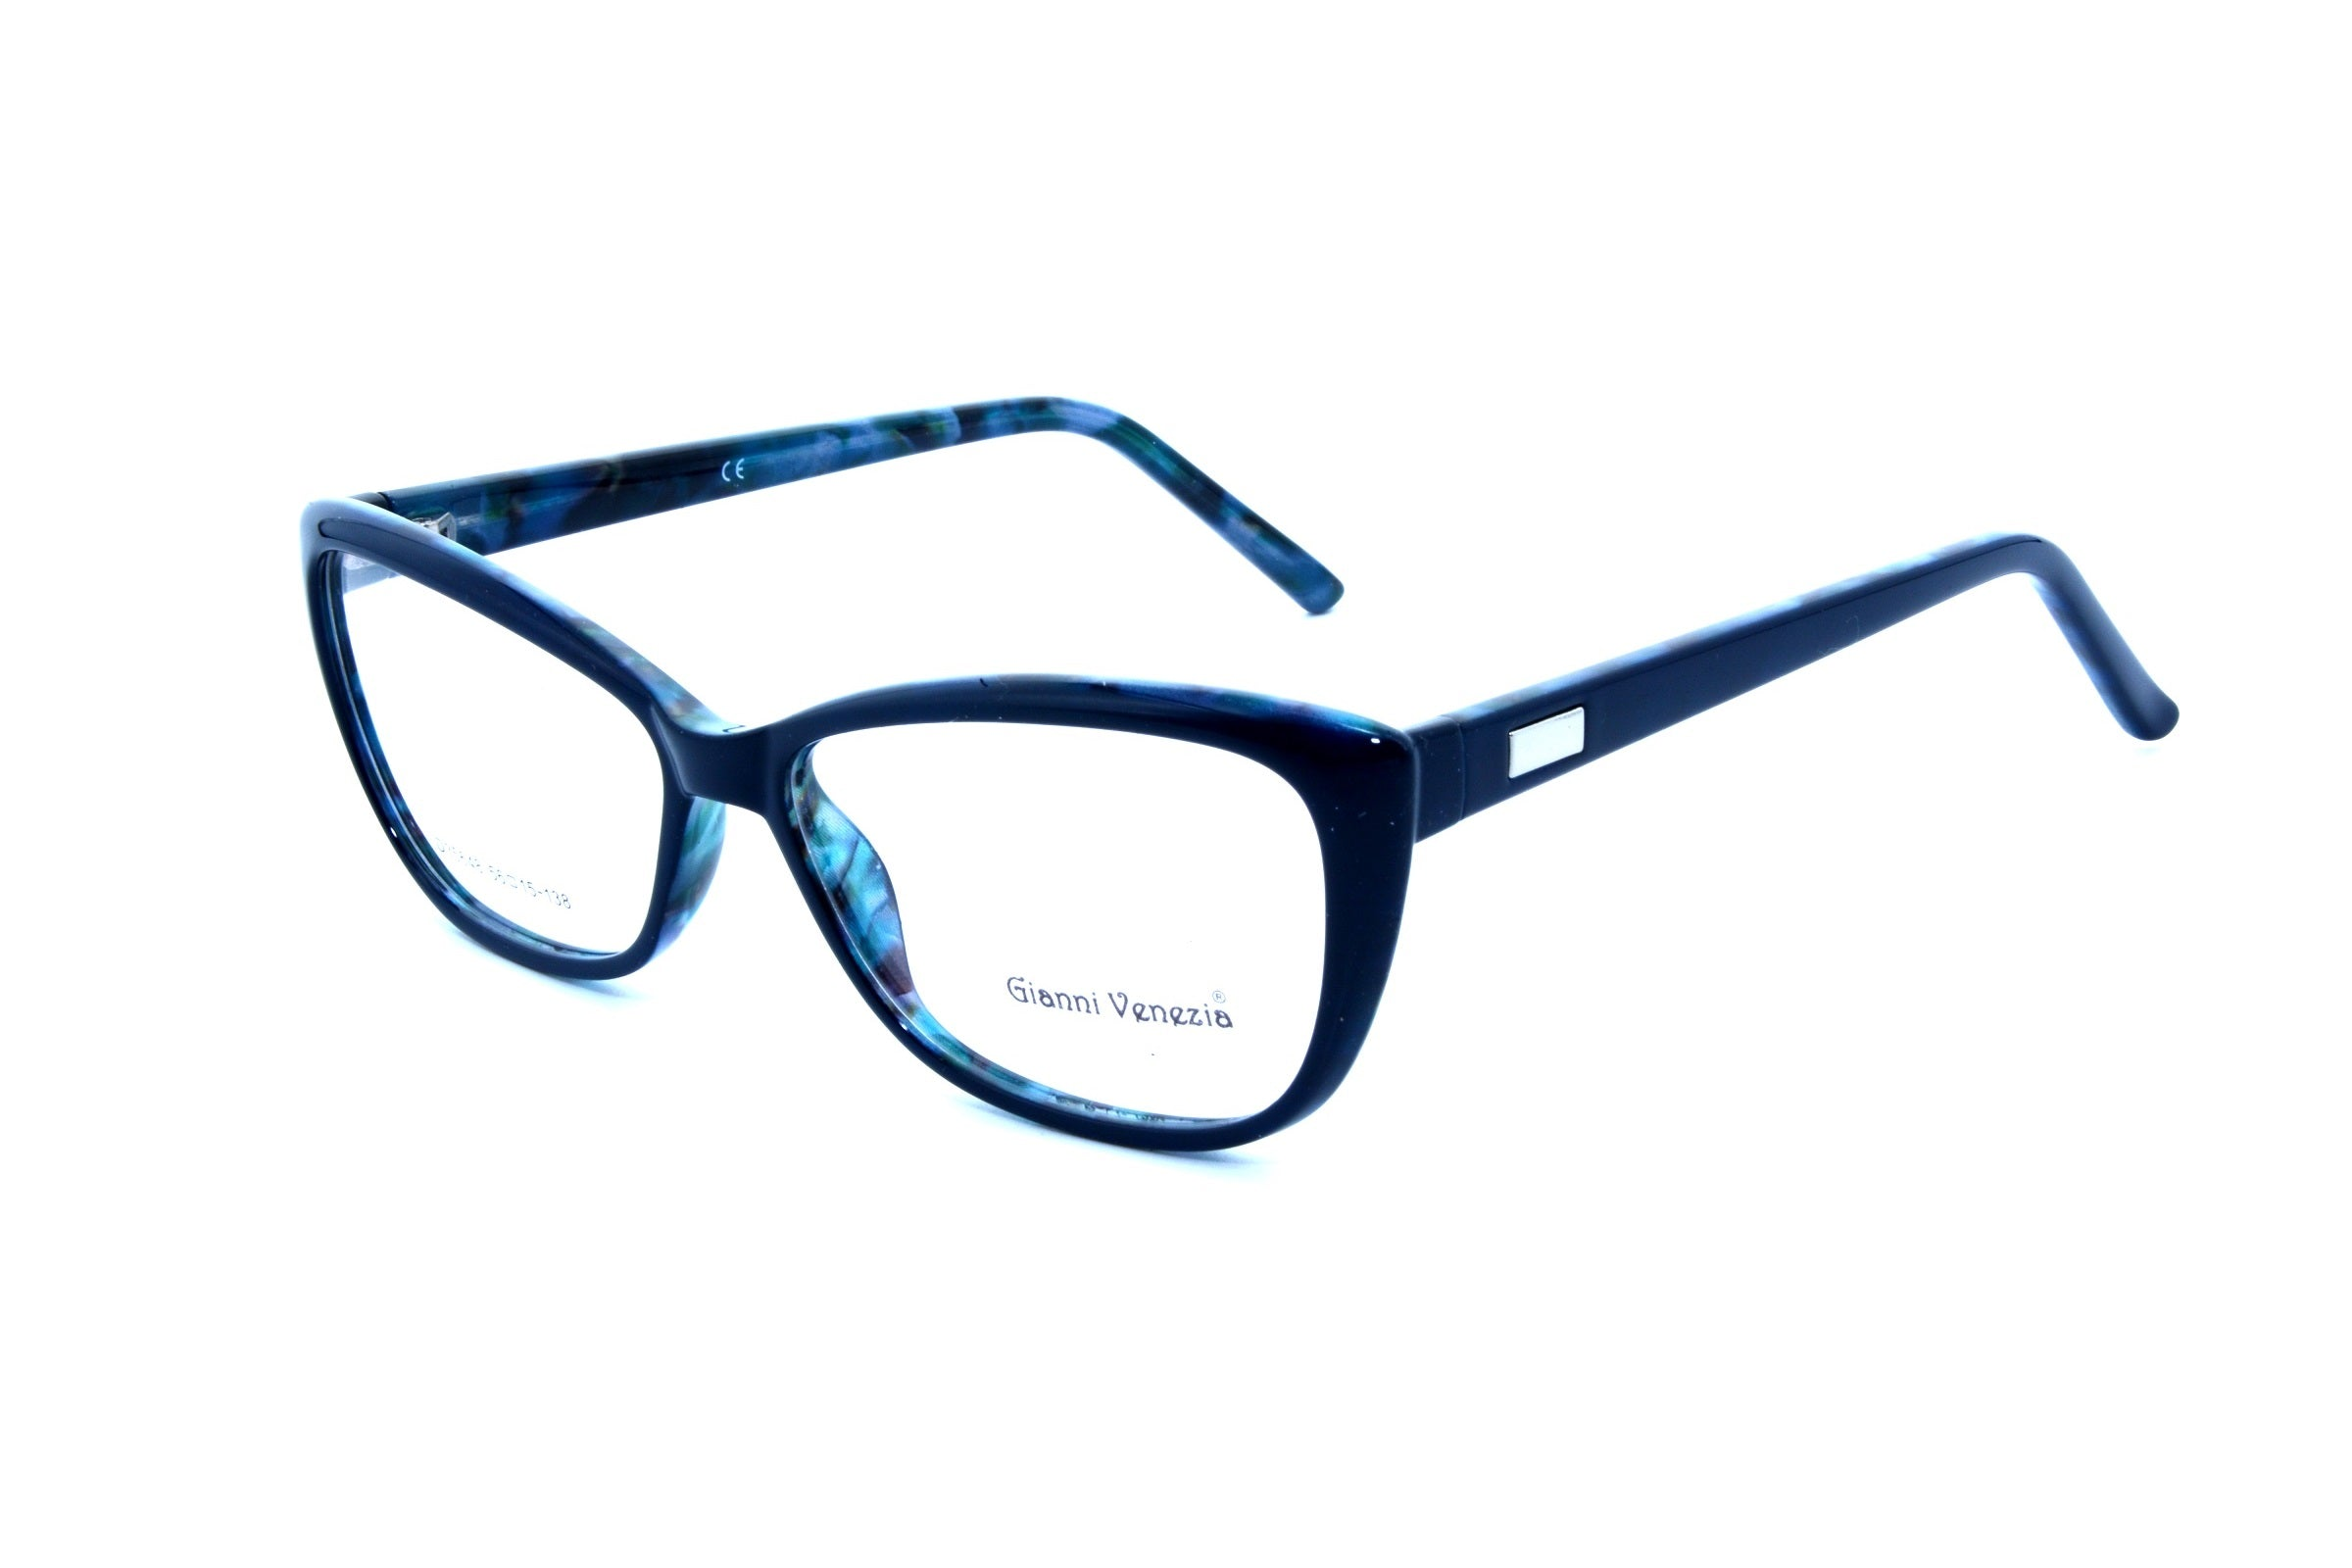 Gianni Vennezia eyewear 35648, C8 - Optics Trading